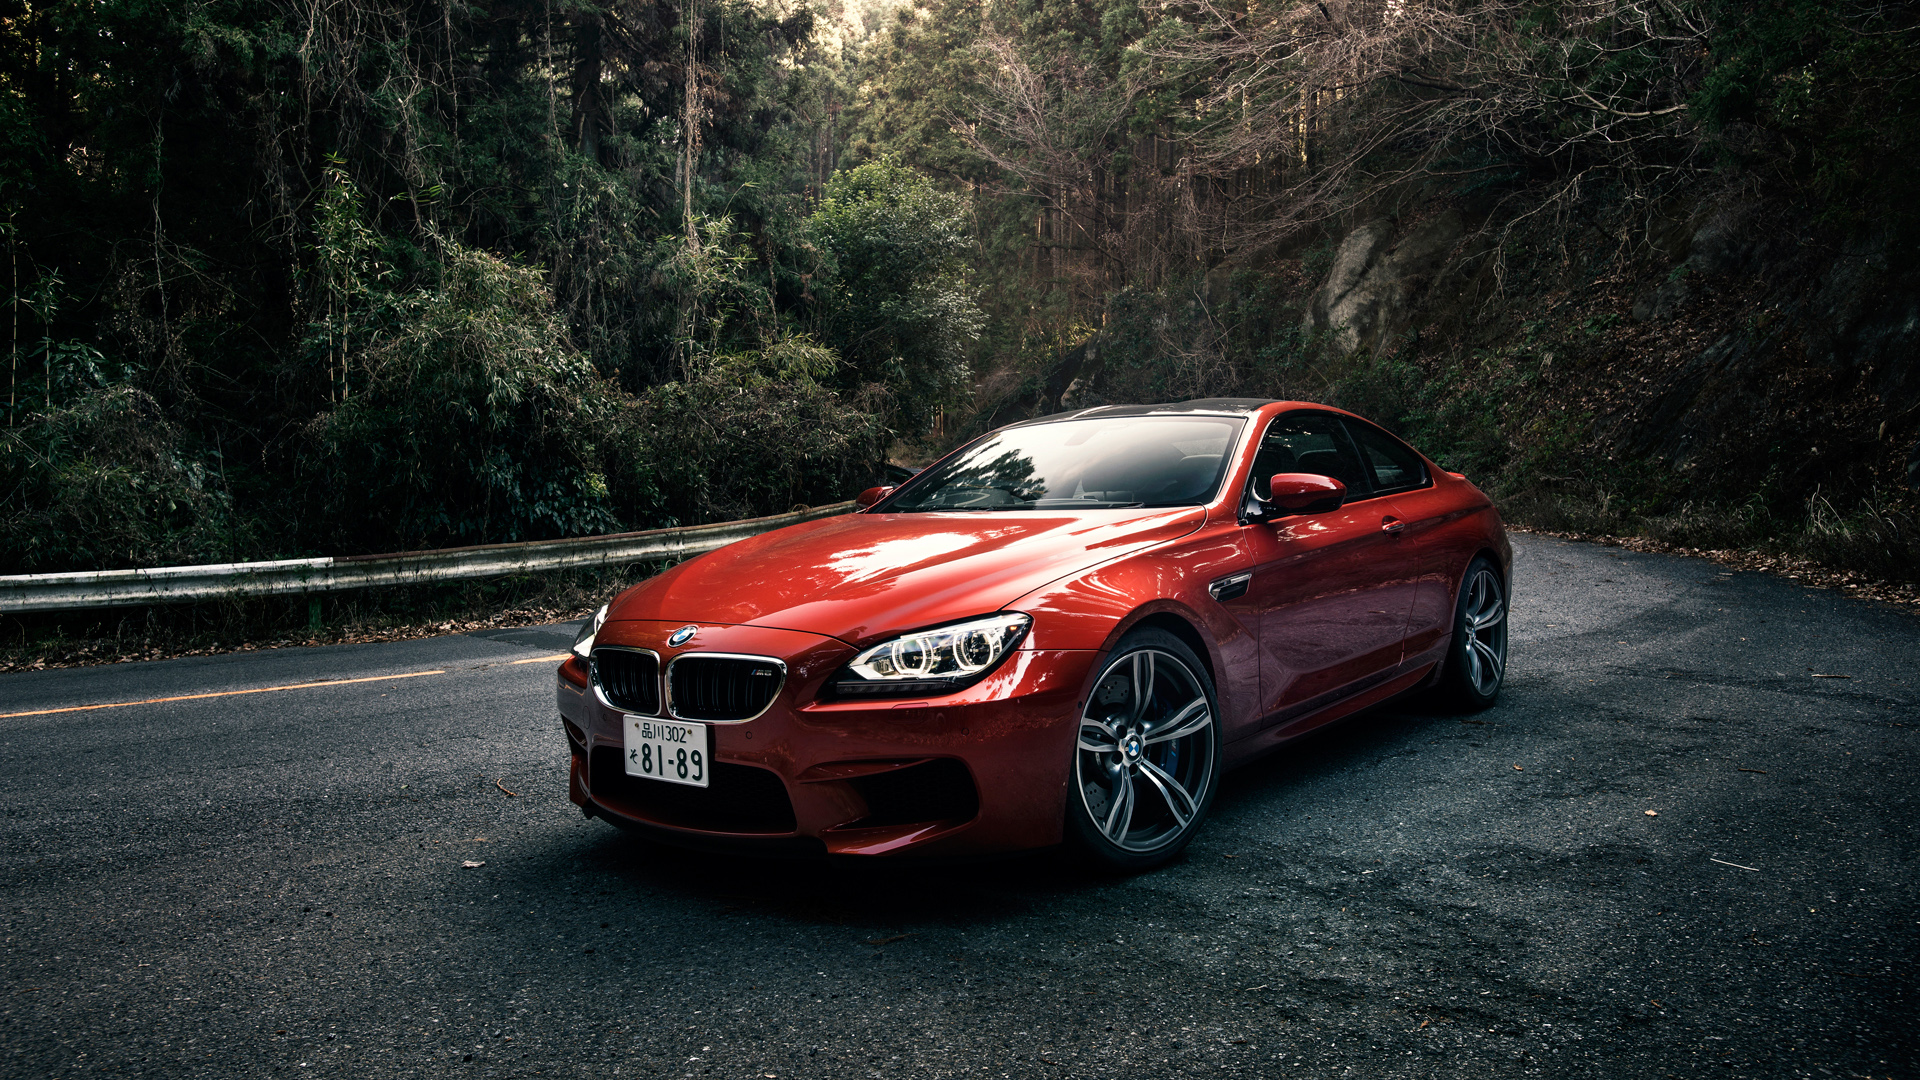 Bmw M6 2 Wallpaper Hd Car Wallpapers Id 3324